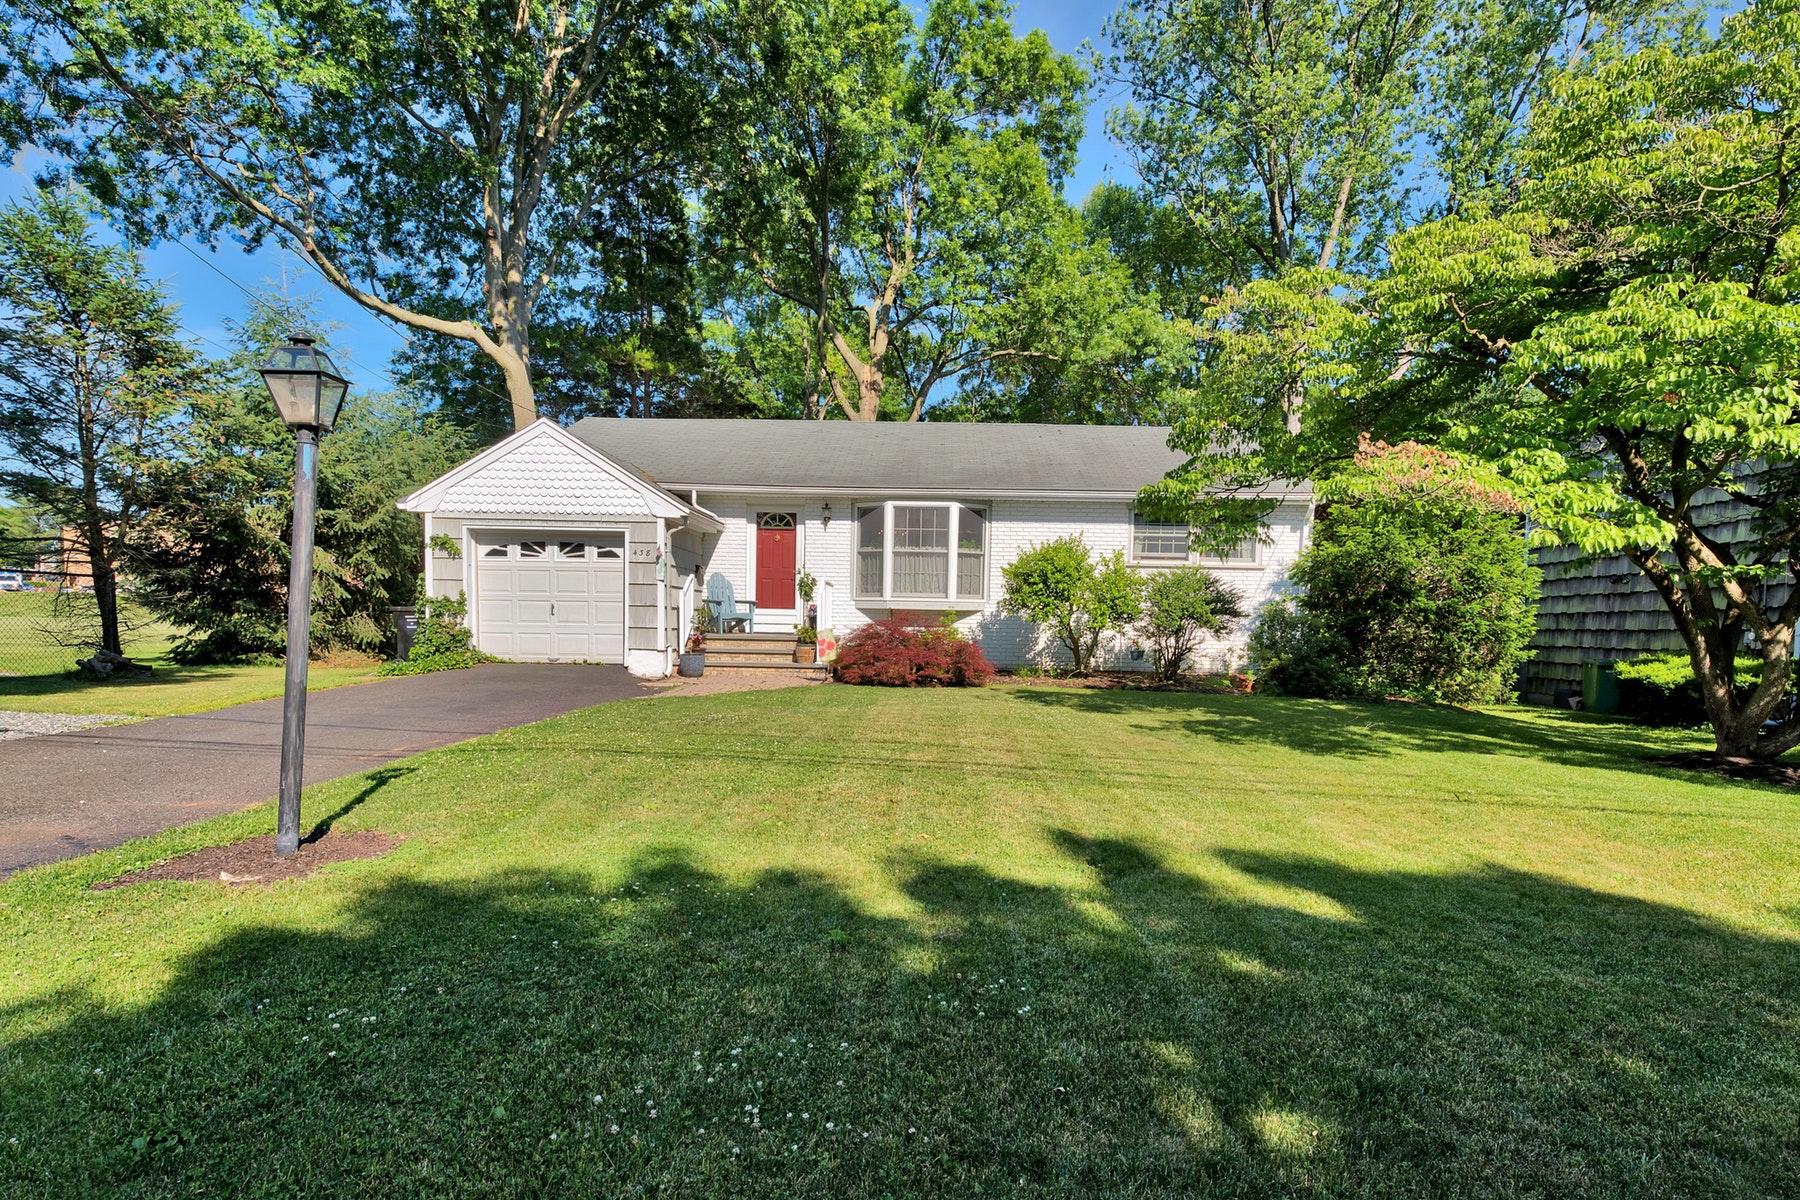 Single Family Home for Sale at A Charming Ranch Home On A Dead End Street. 438 Cedar Avenue, Paramus, New Jersey 07652 United States